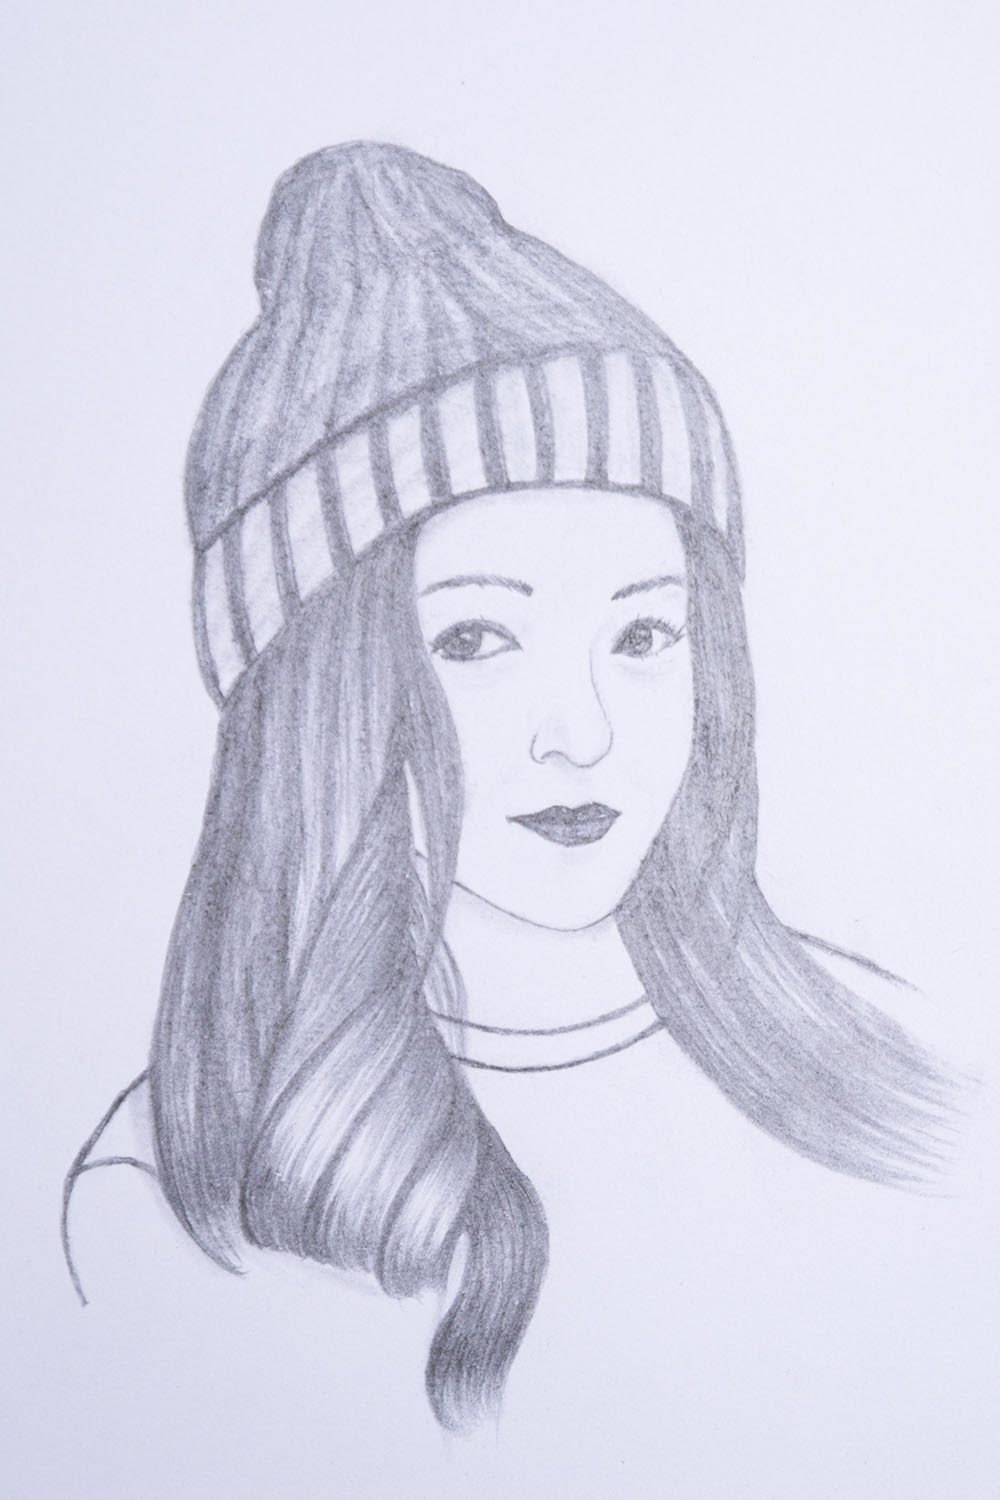 How to draw a girl wearing winter cap